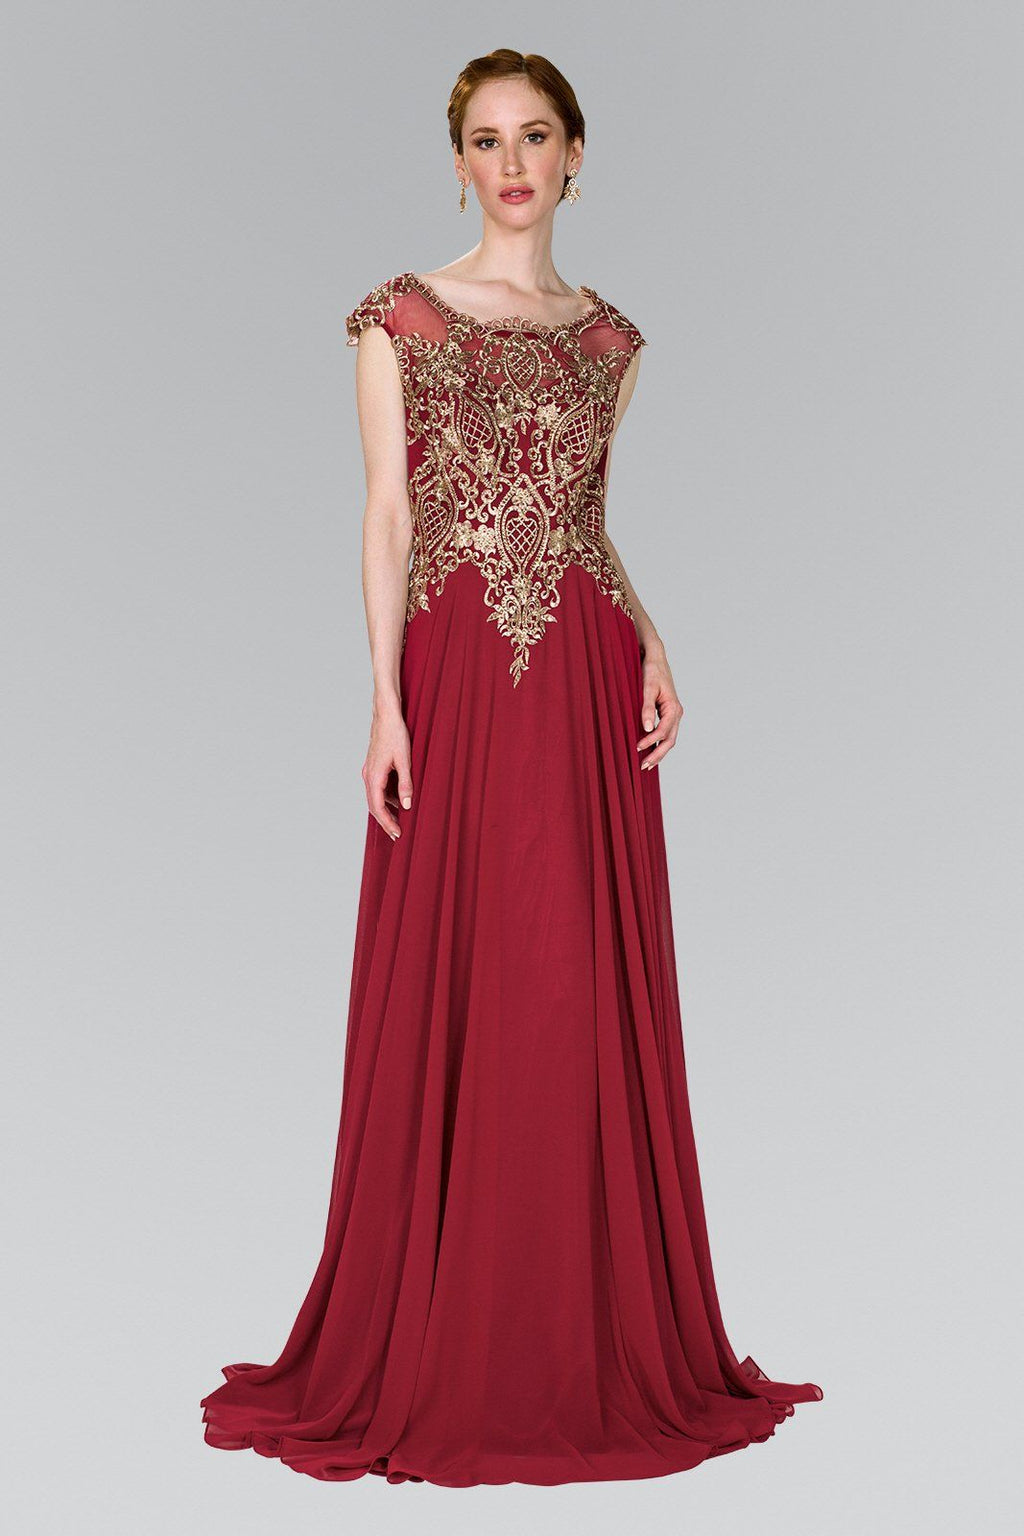 Burgundy evening dress gls 2407-Simply Fab Dress